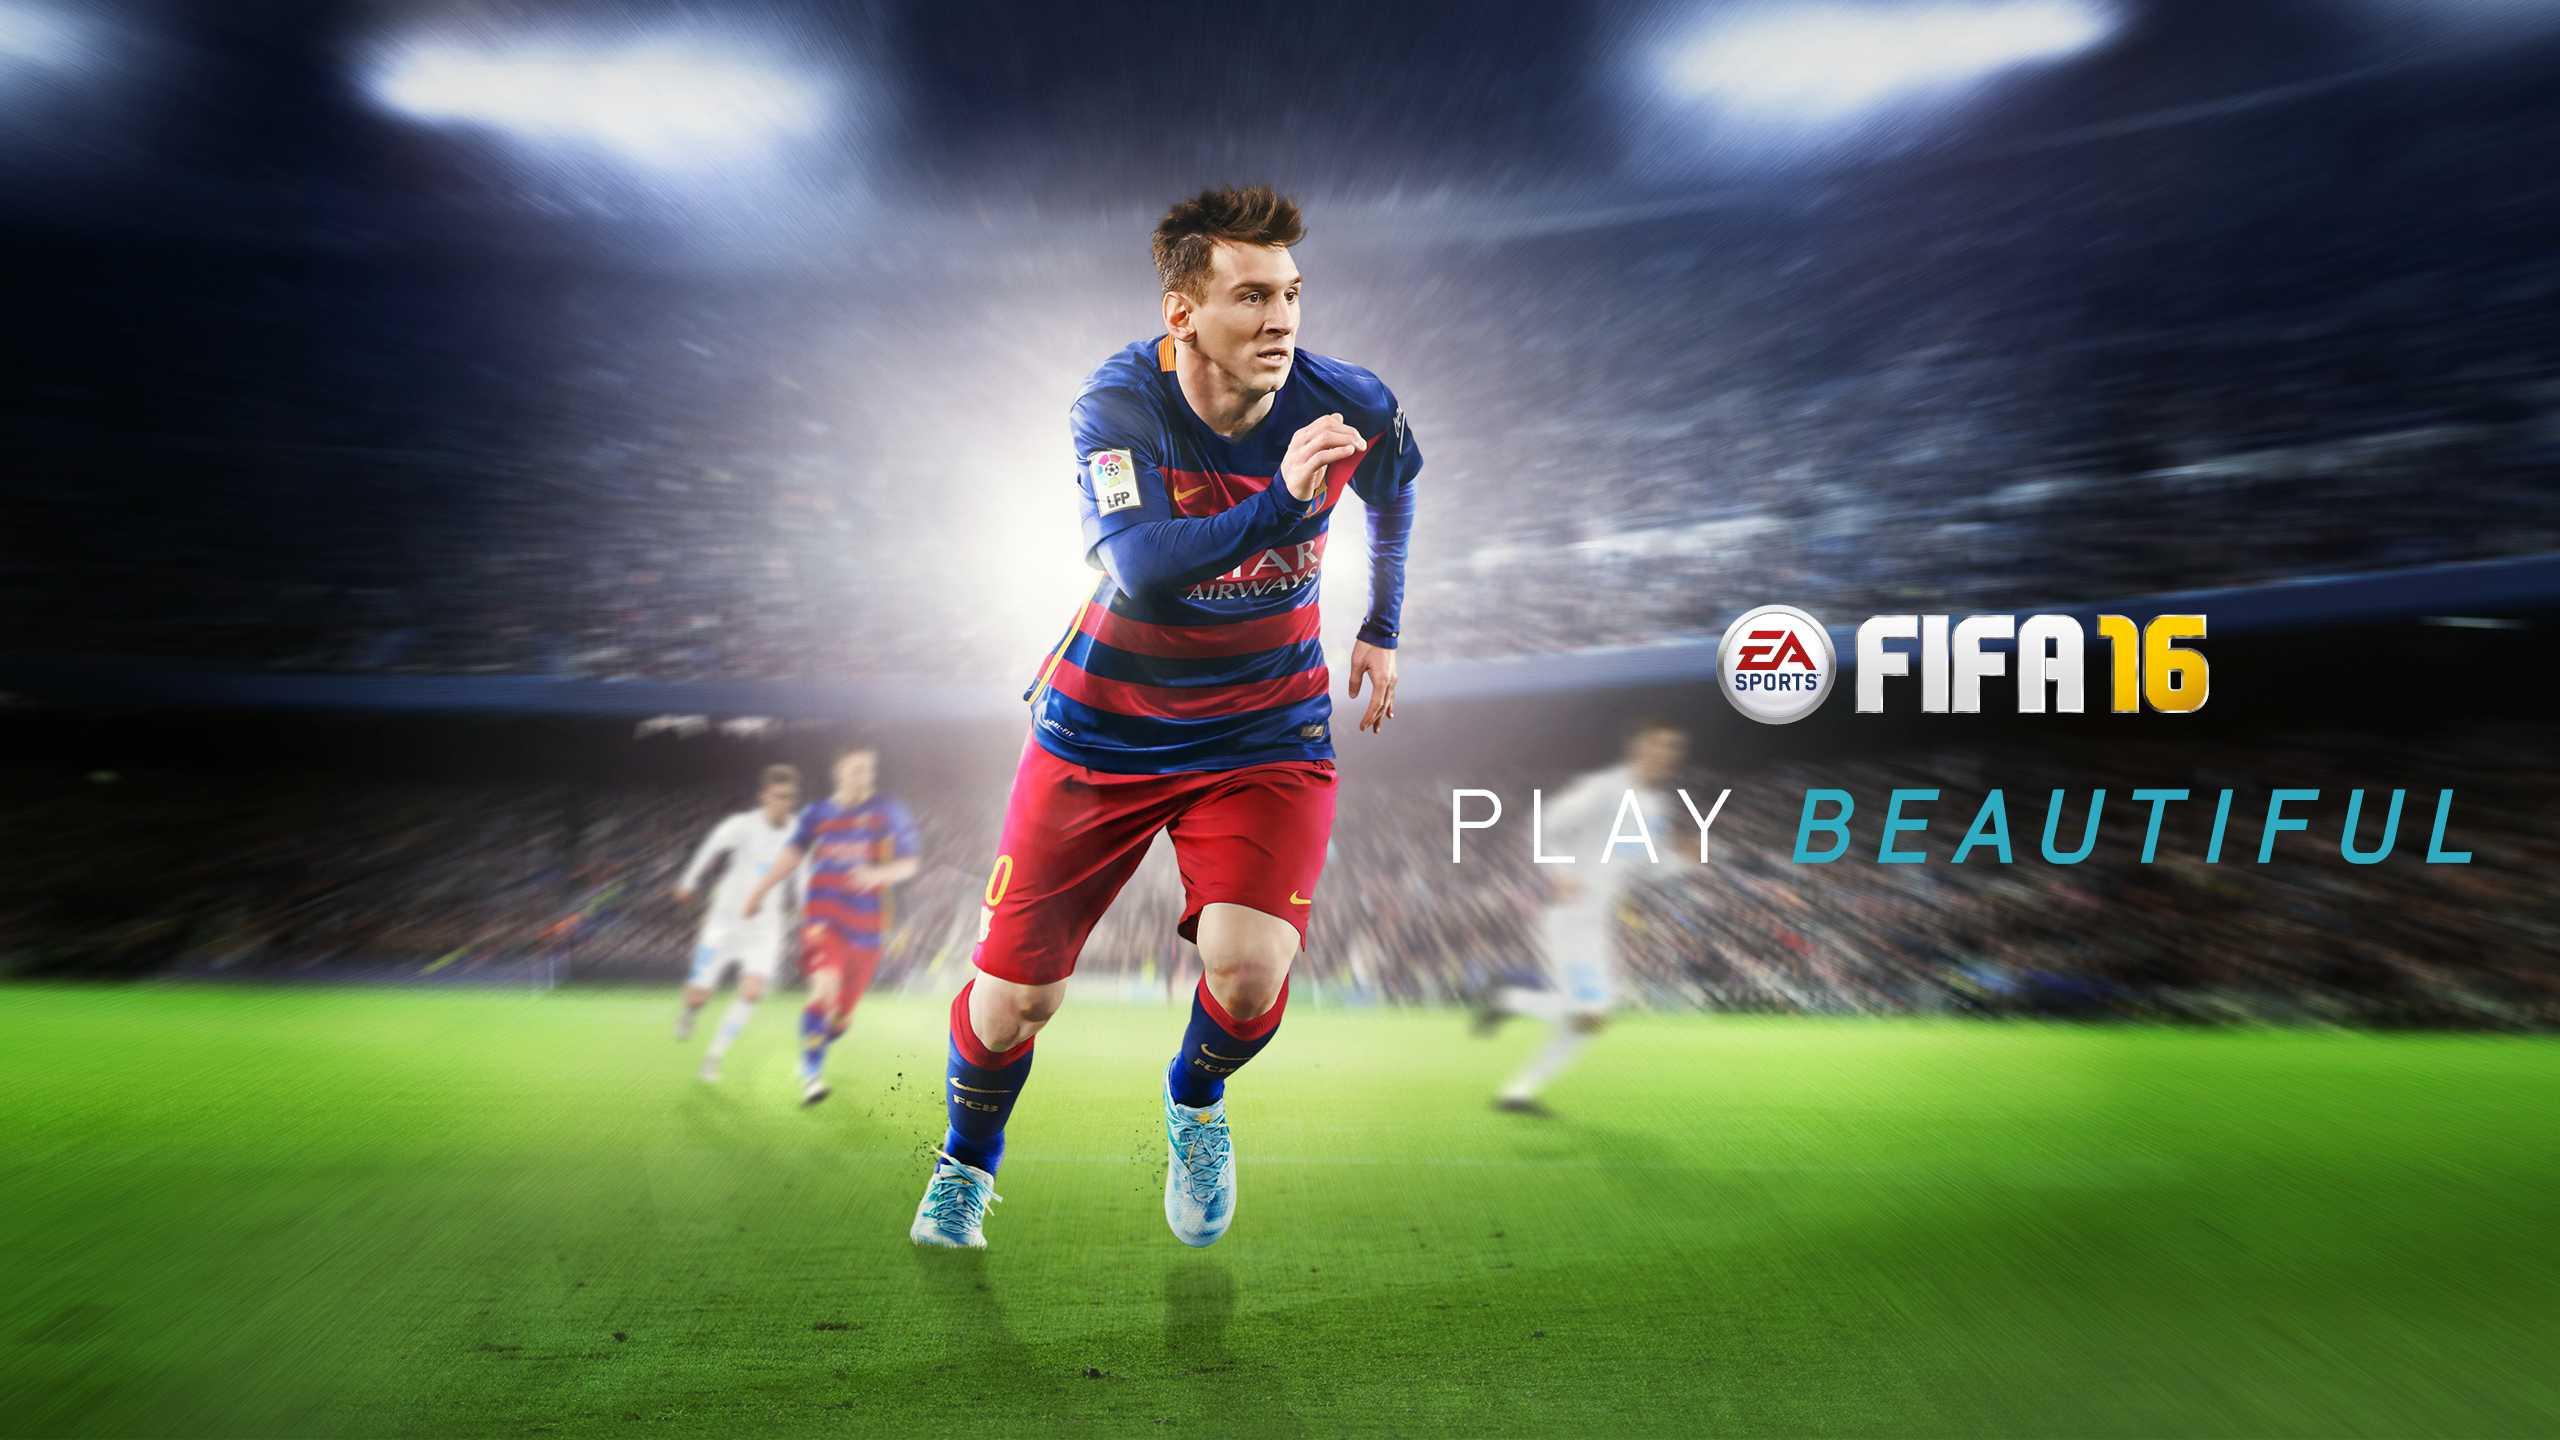 FIFA 16 Game